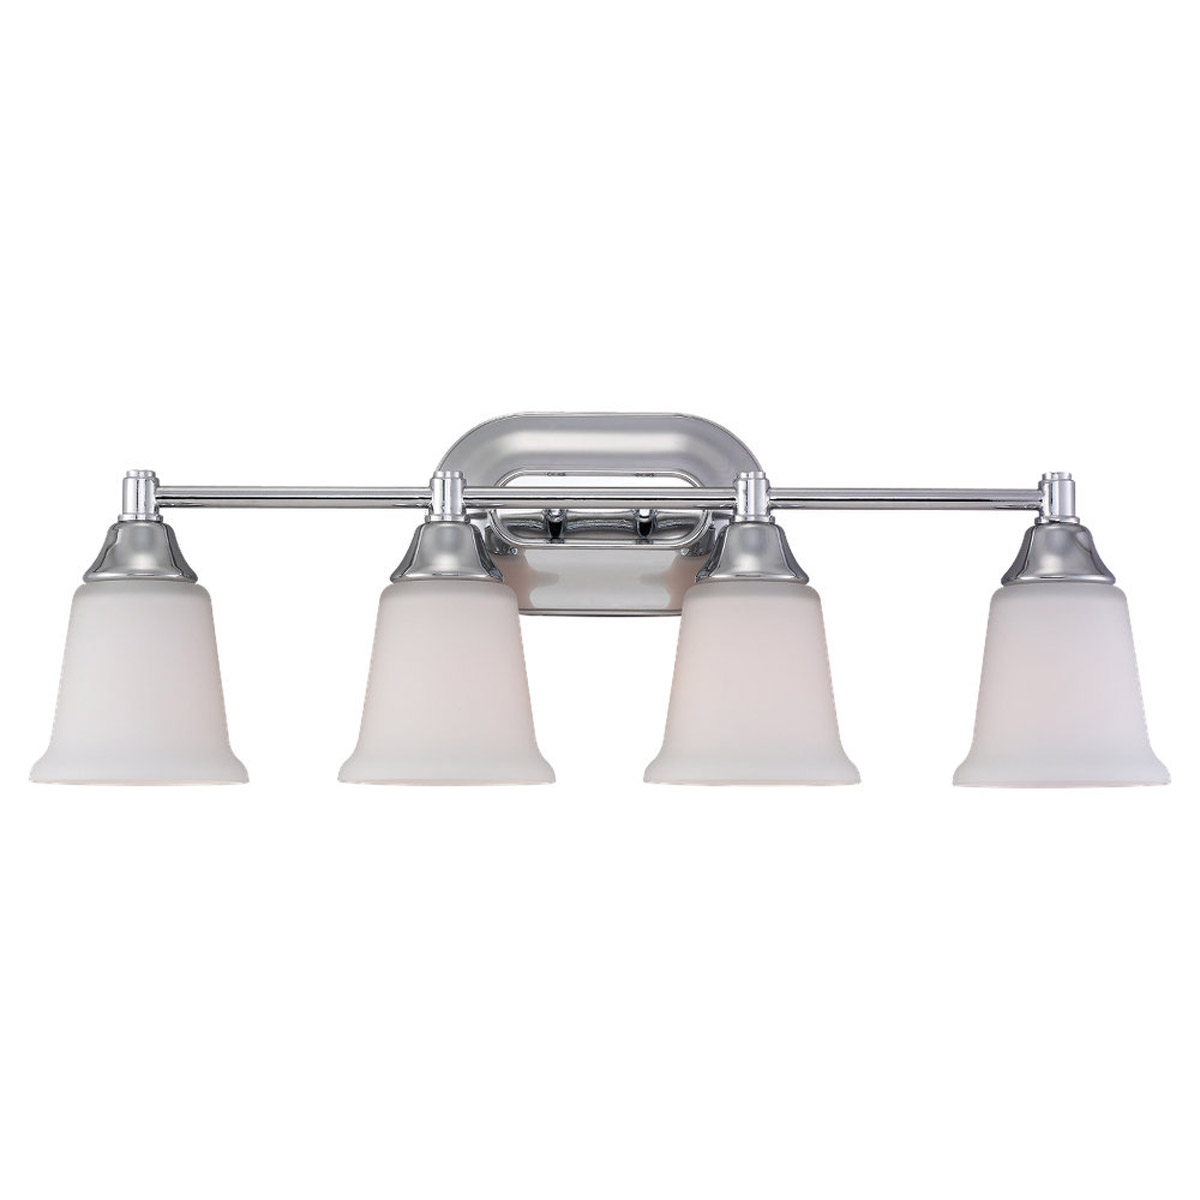 Sea Gull Lighting Belair 4 Light Wall / Bath / Vanity in Chrome 44793-05